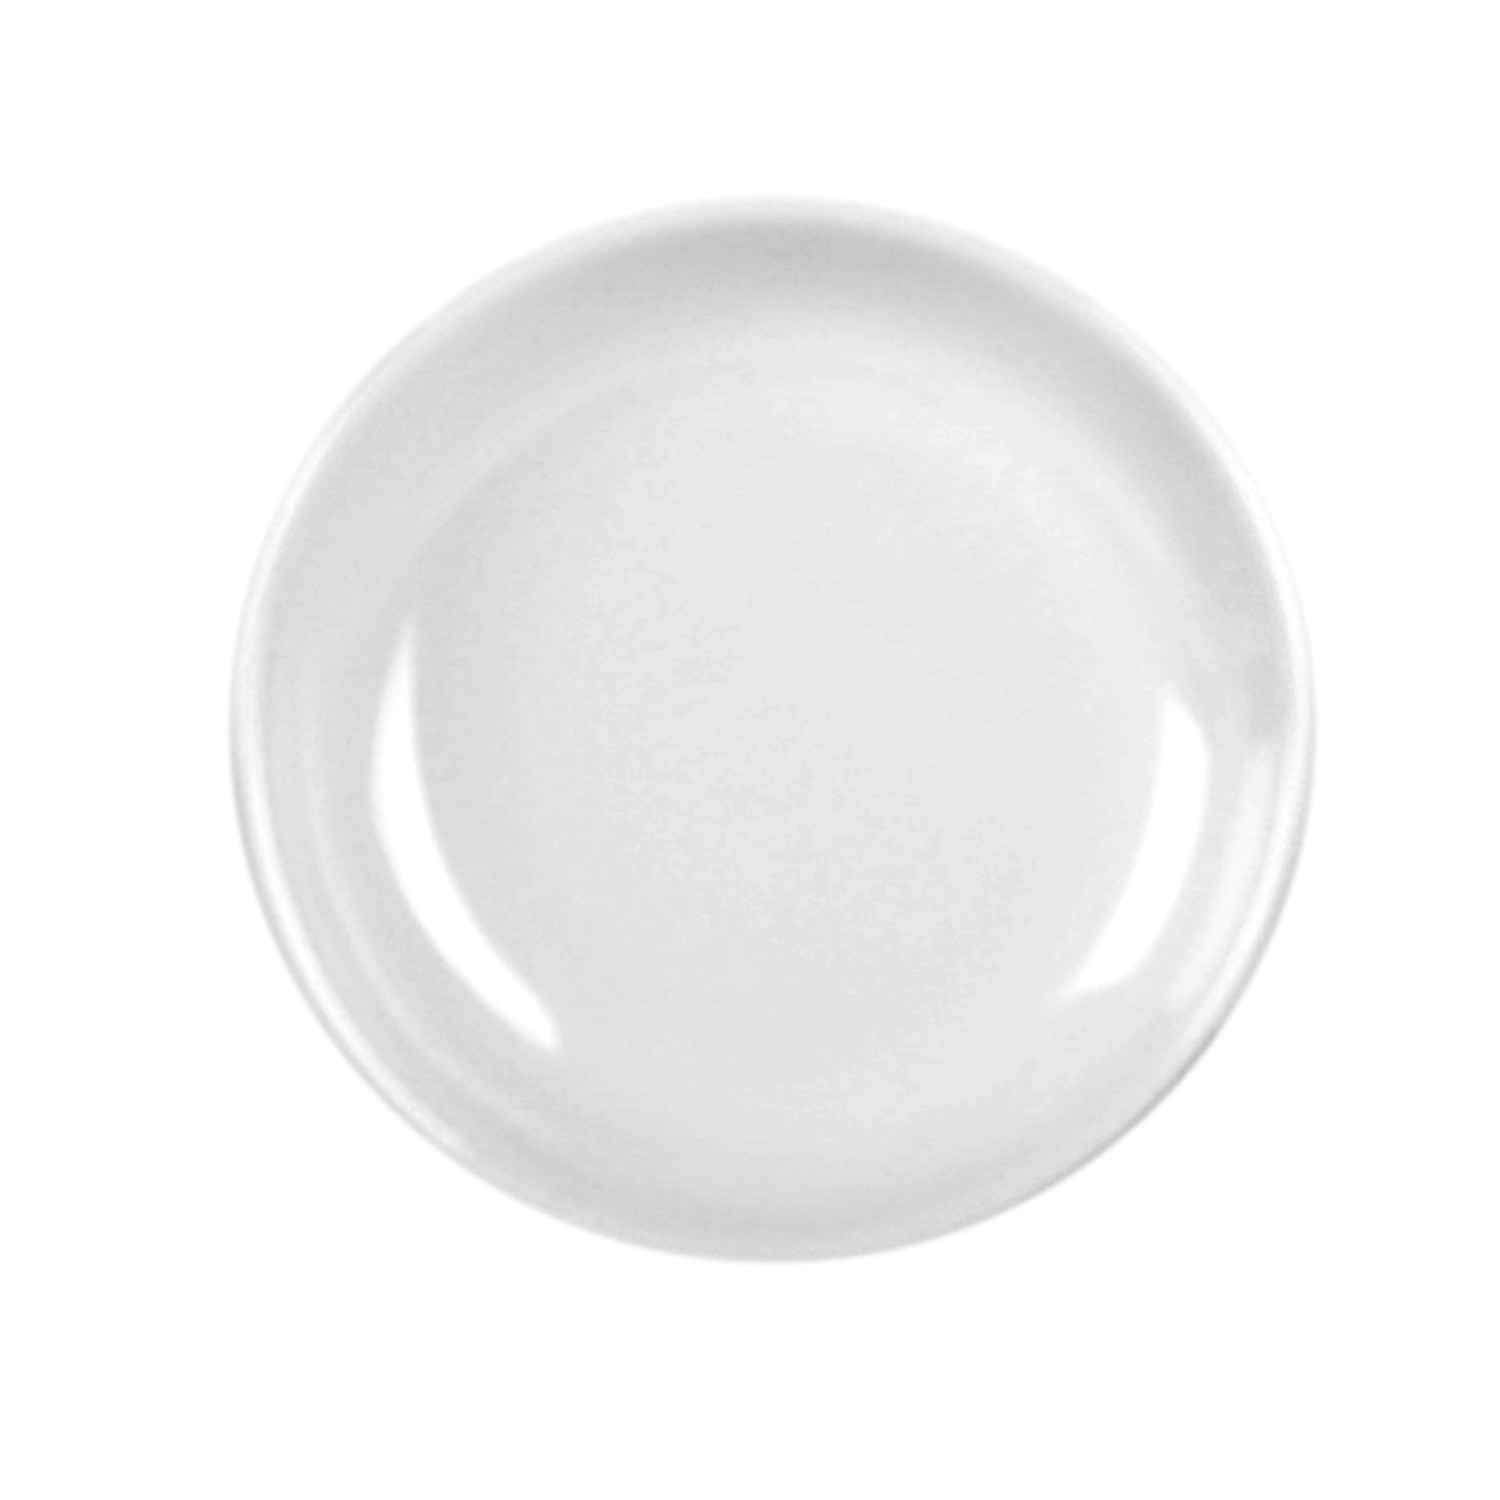 Thunder Group 102.8TW Imperial White Melamine Sauce Dish 2 oz.